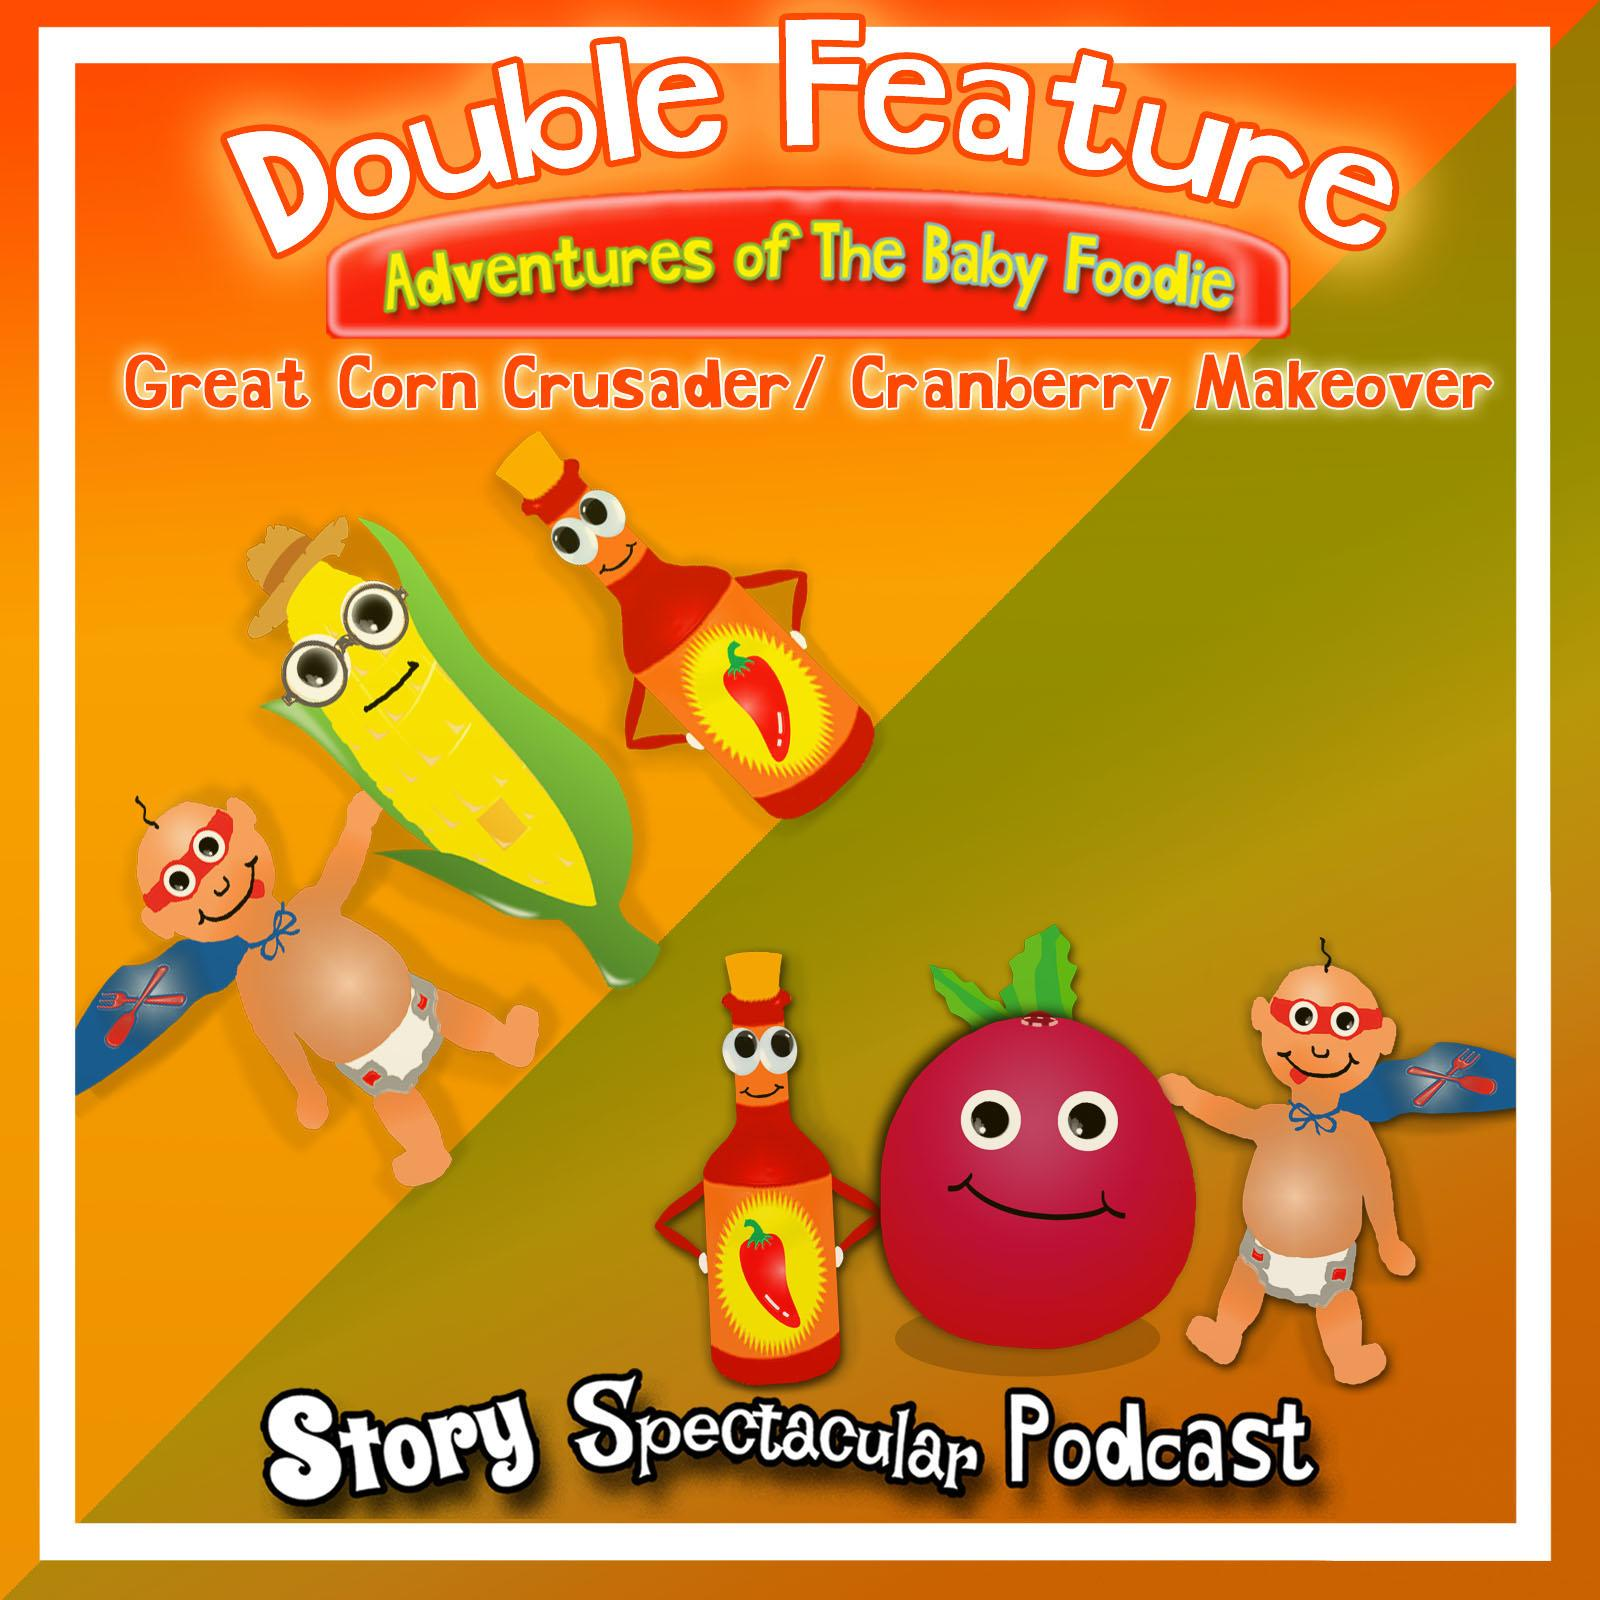 Baby Foodie Double Feature: Corn Crusader / Cranberry Makeover